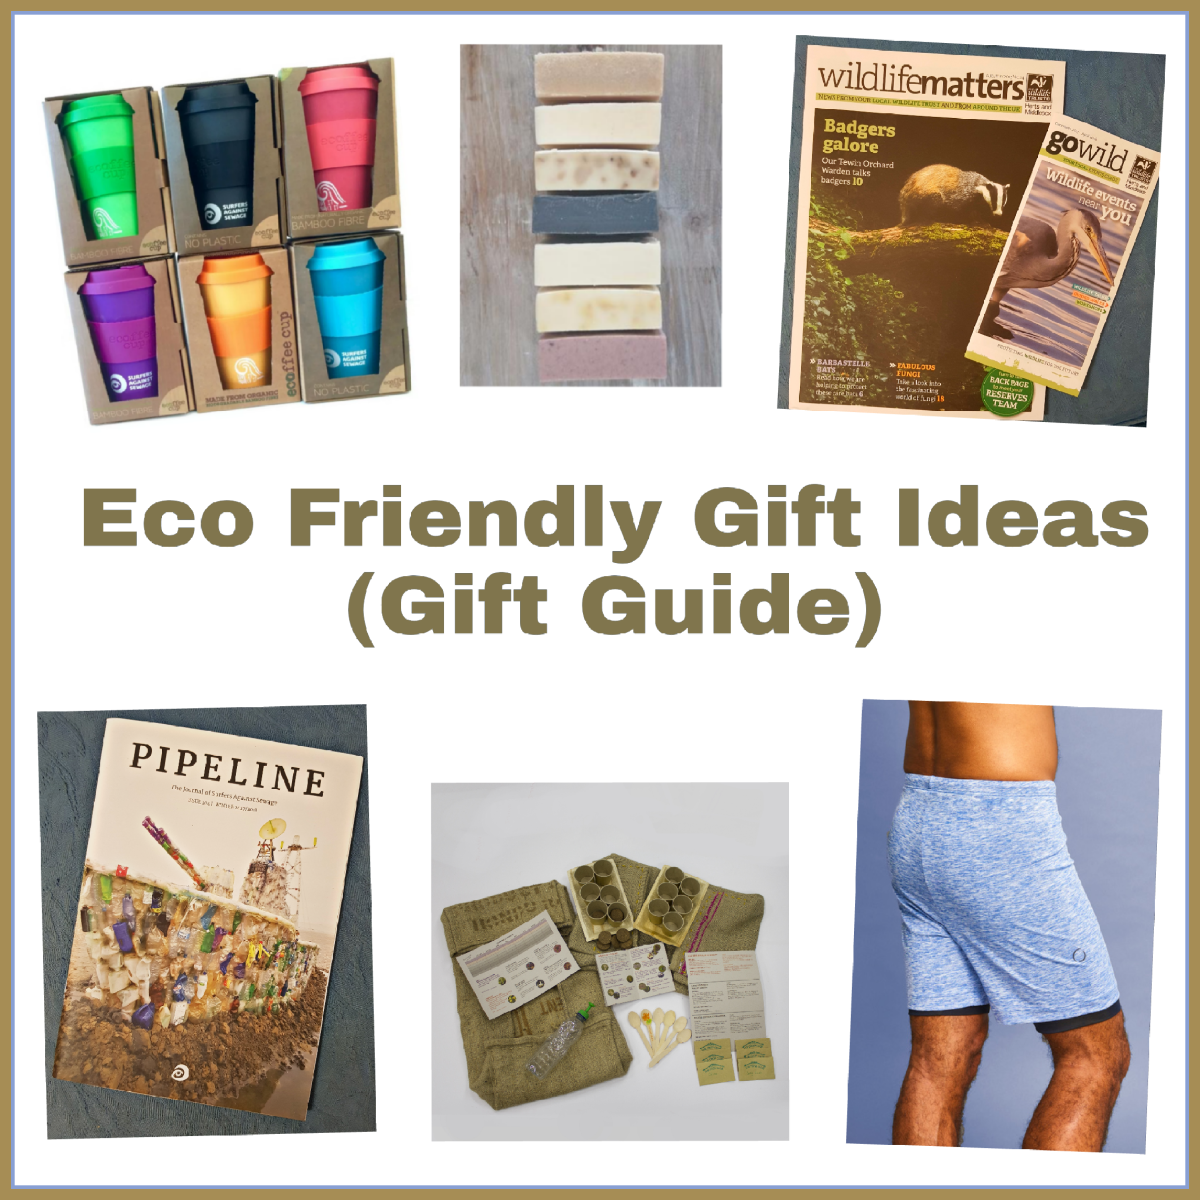 Eco- Friendly Gift Ideas (Gift Guide With Giveaway)